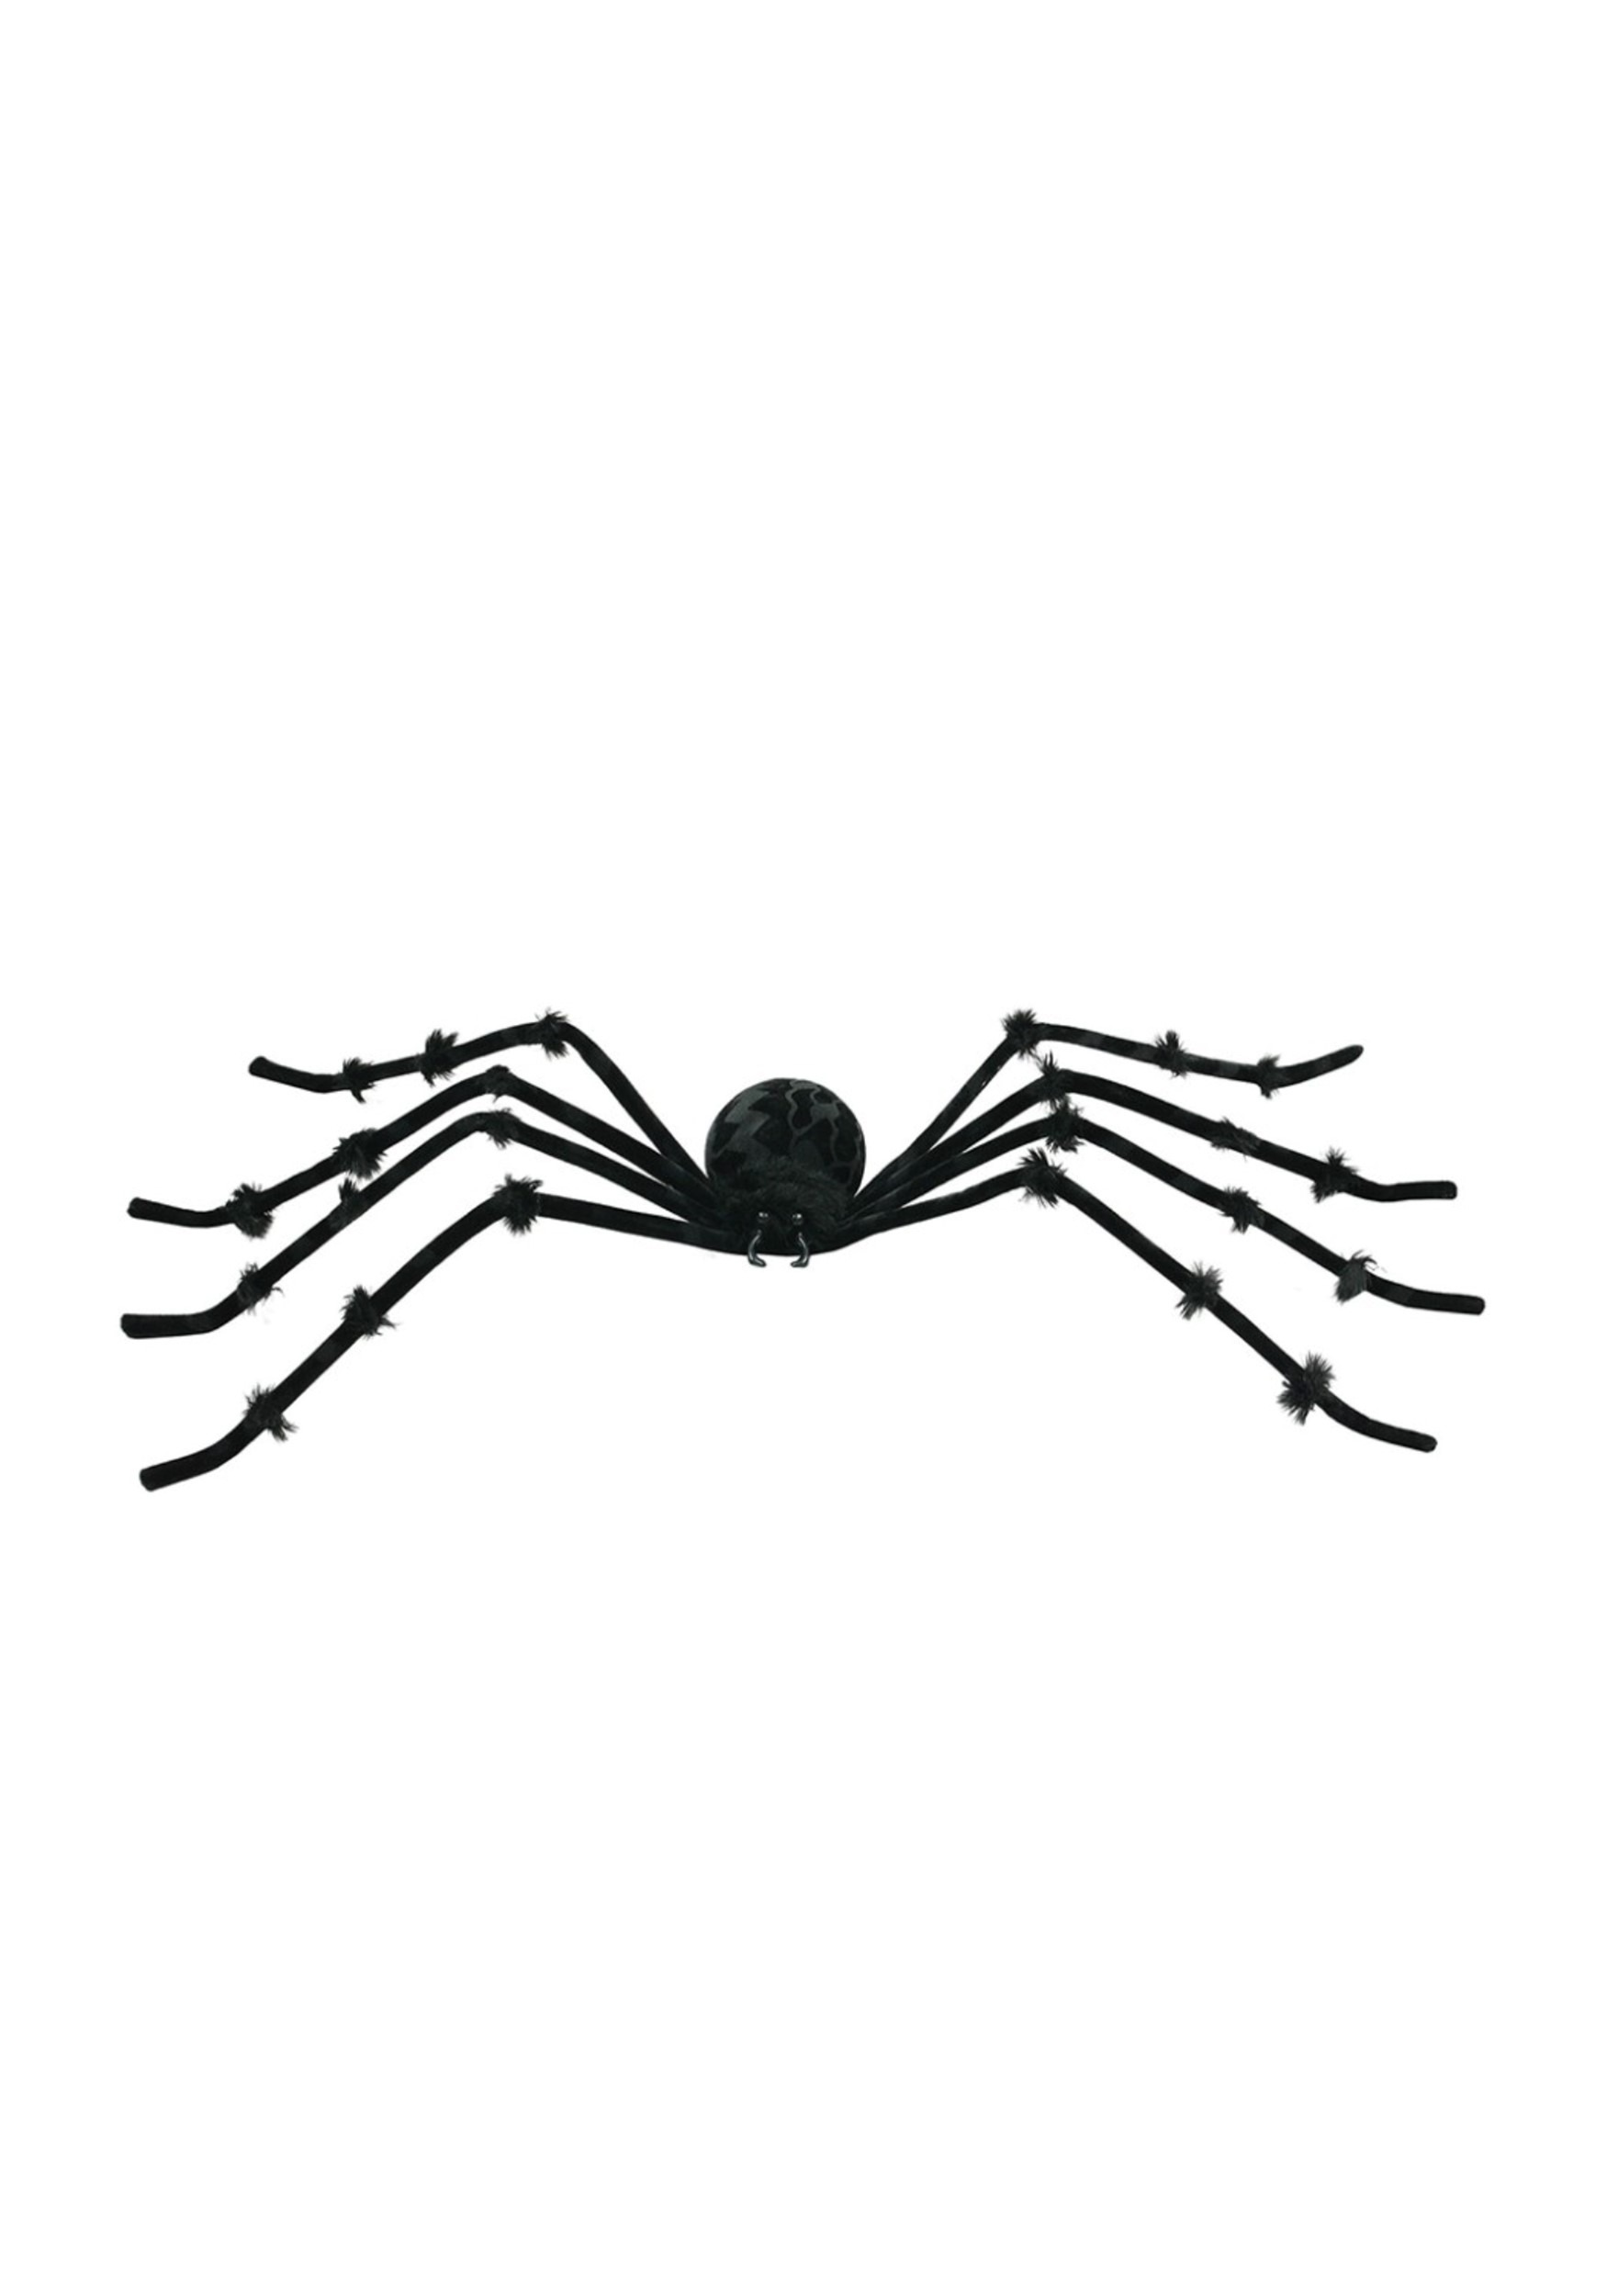 Halloween spider decorations - Black 50 Inch Posable Spider Spider Halloween Decorations